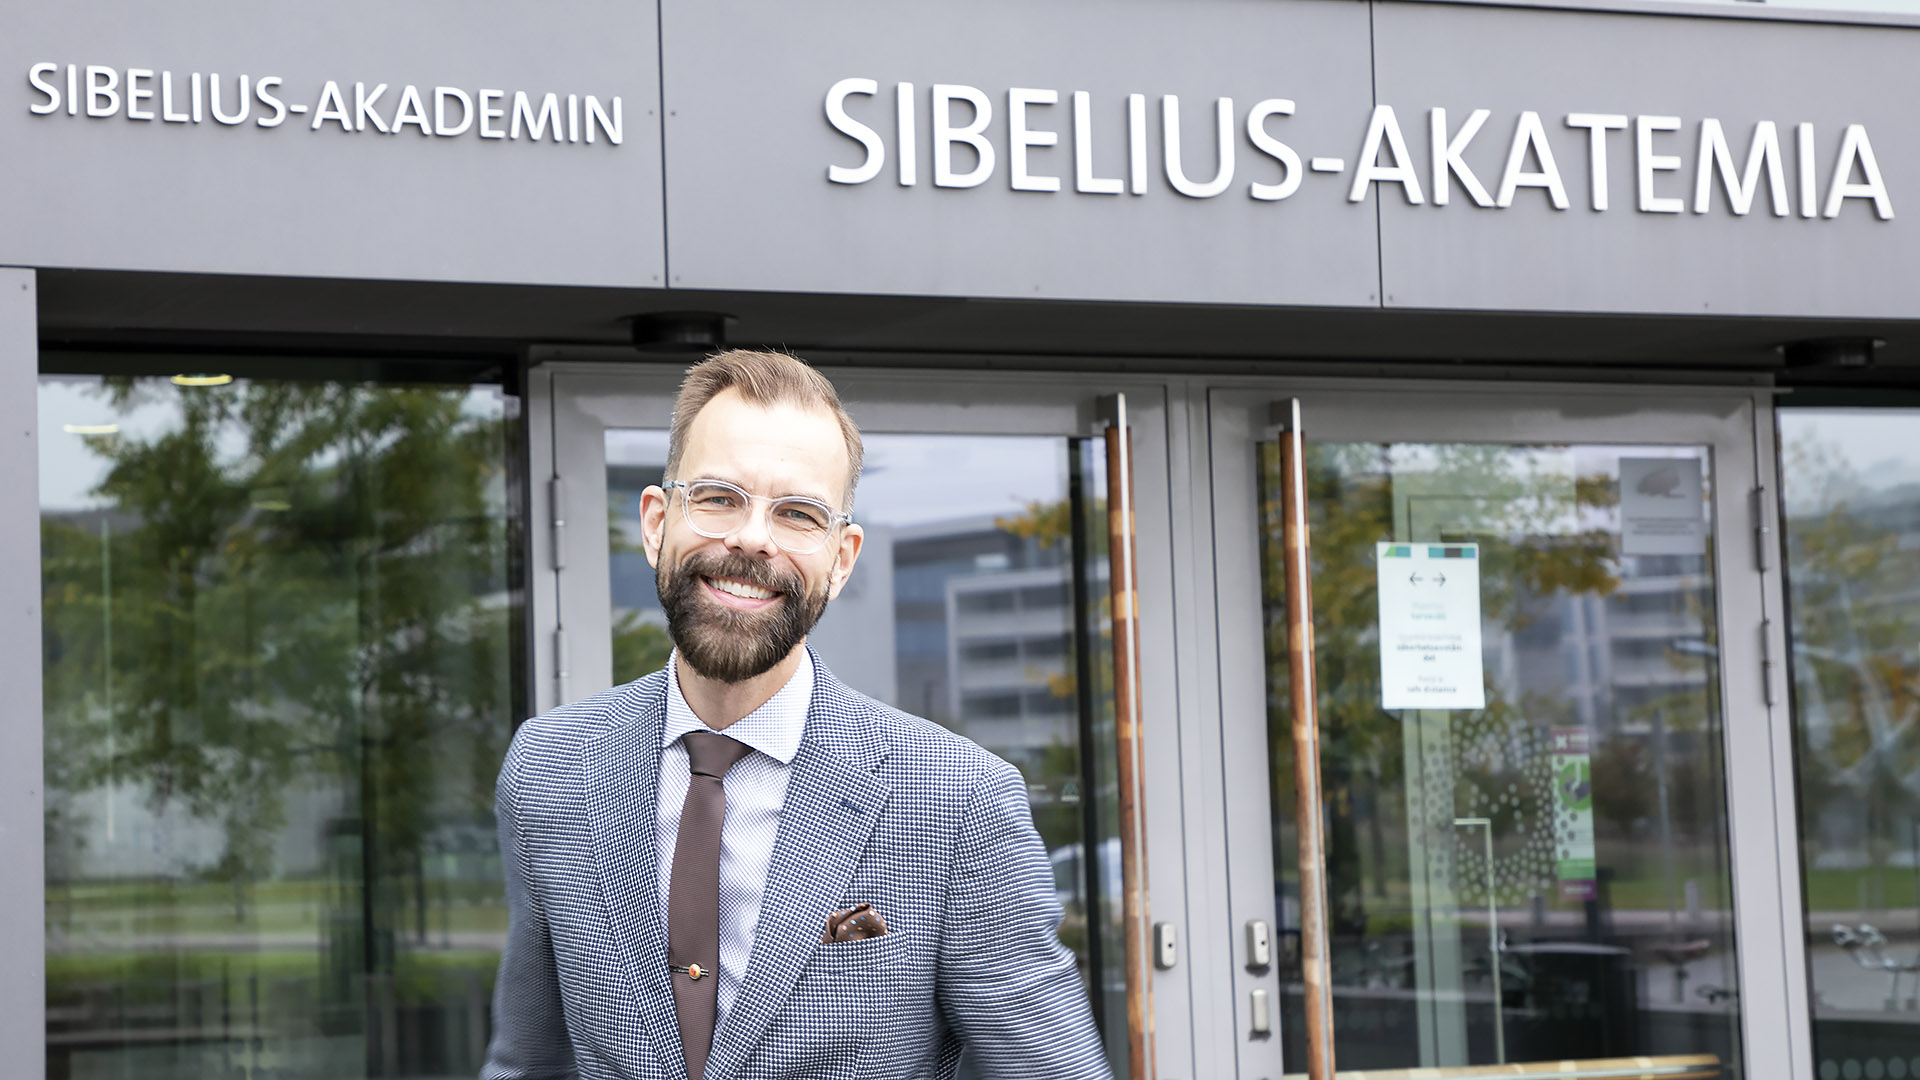 Markus Utrio stands outside of Sibelius Academy's main entrance at Helsinki Music Centre